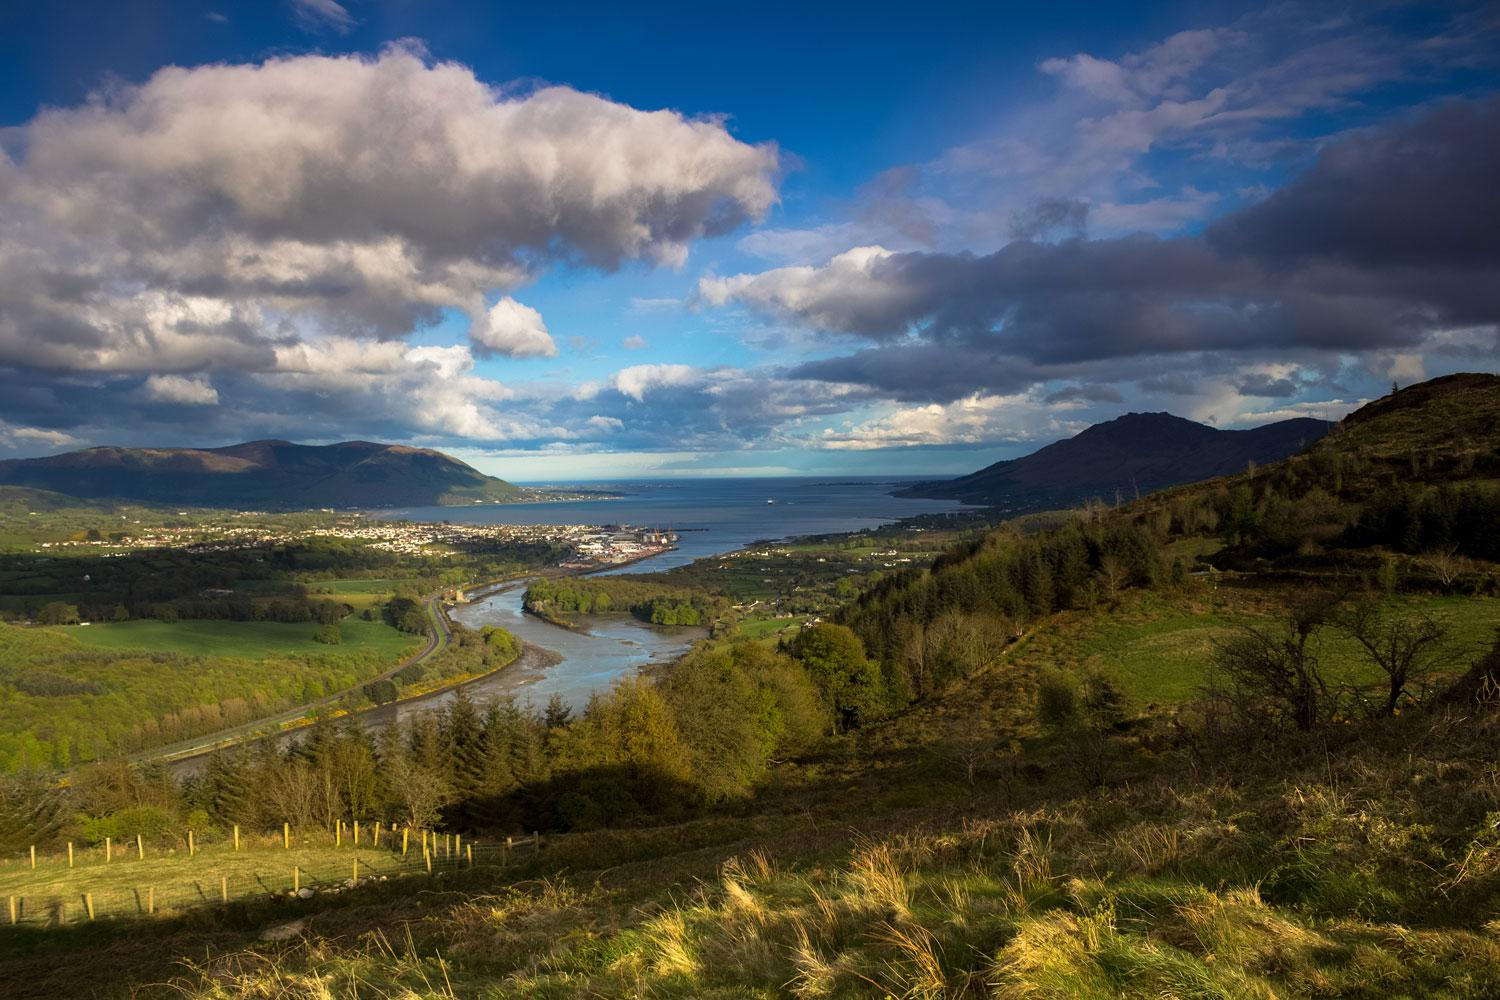 Views over Carlingford Lough and the Mourne and Cooley Mountains